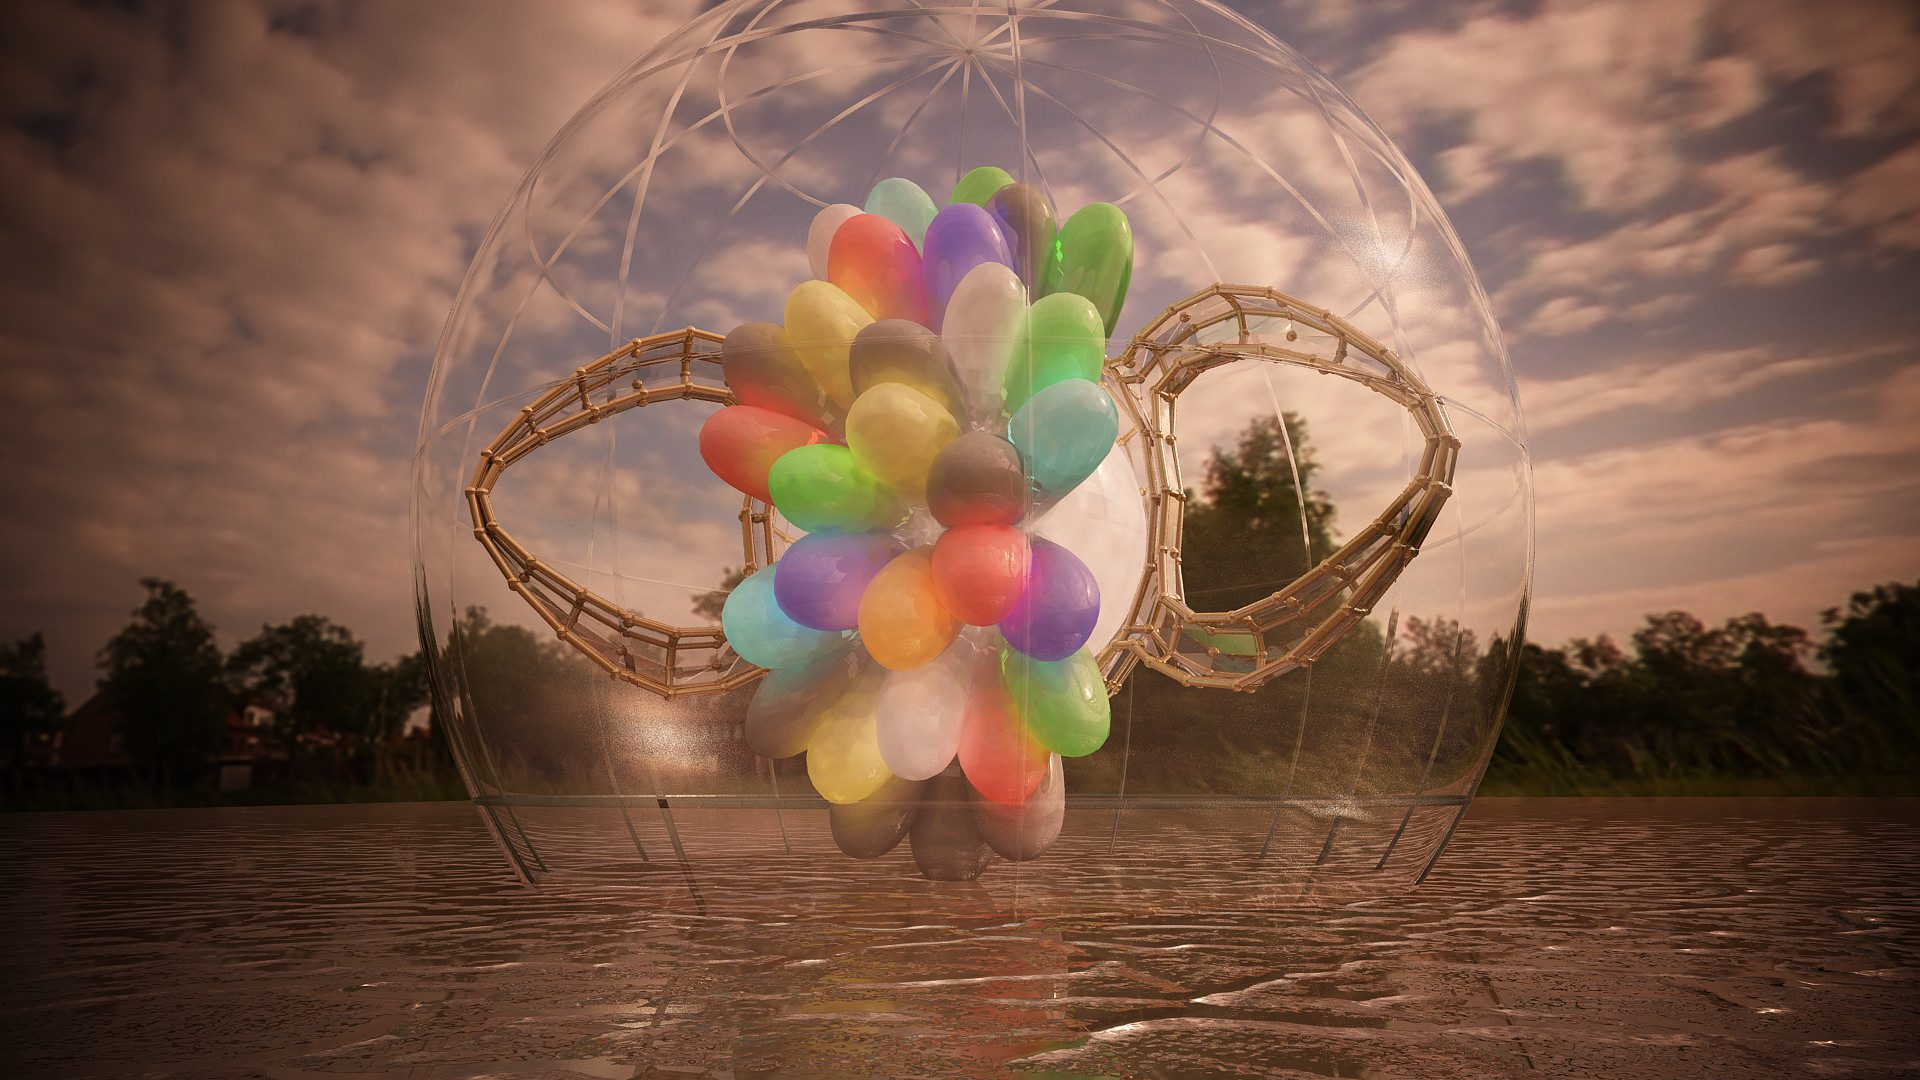 balloon_zorb_ball_vray_material_settings_no_pshop_3d_model_max_8c928de8-3a1a-4e2e-bf9c-997658361dea